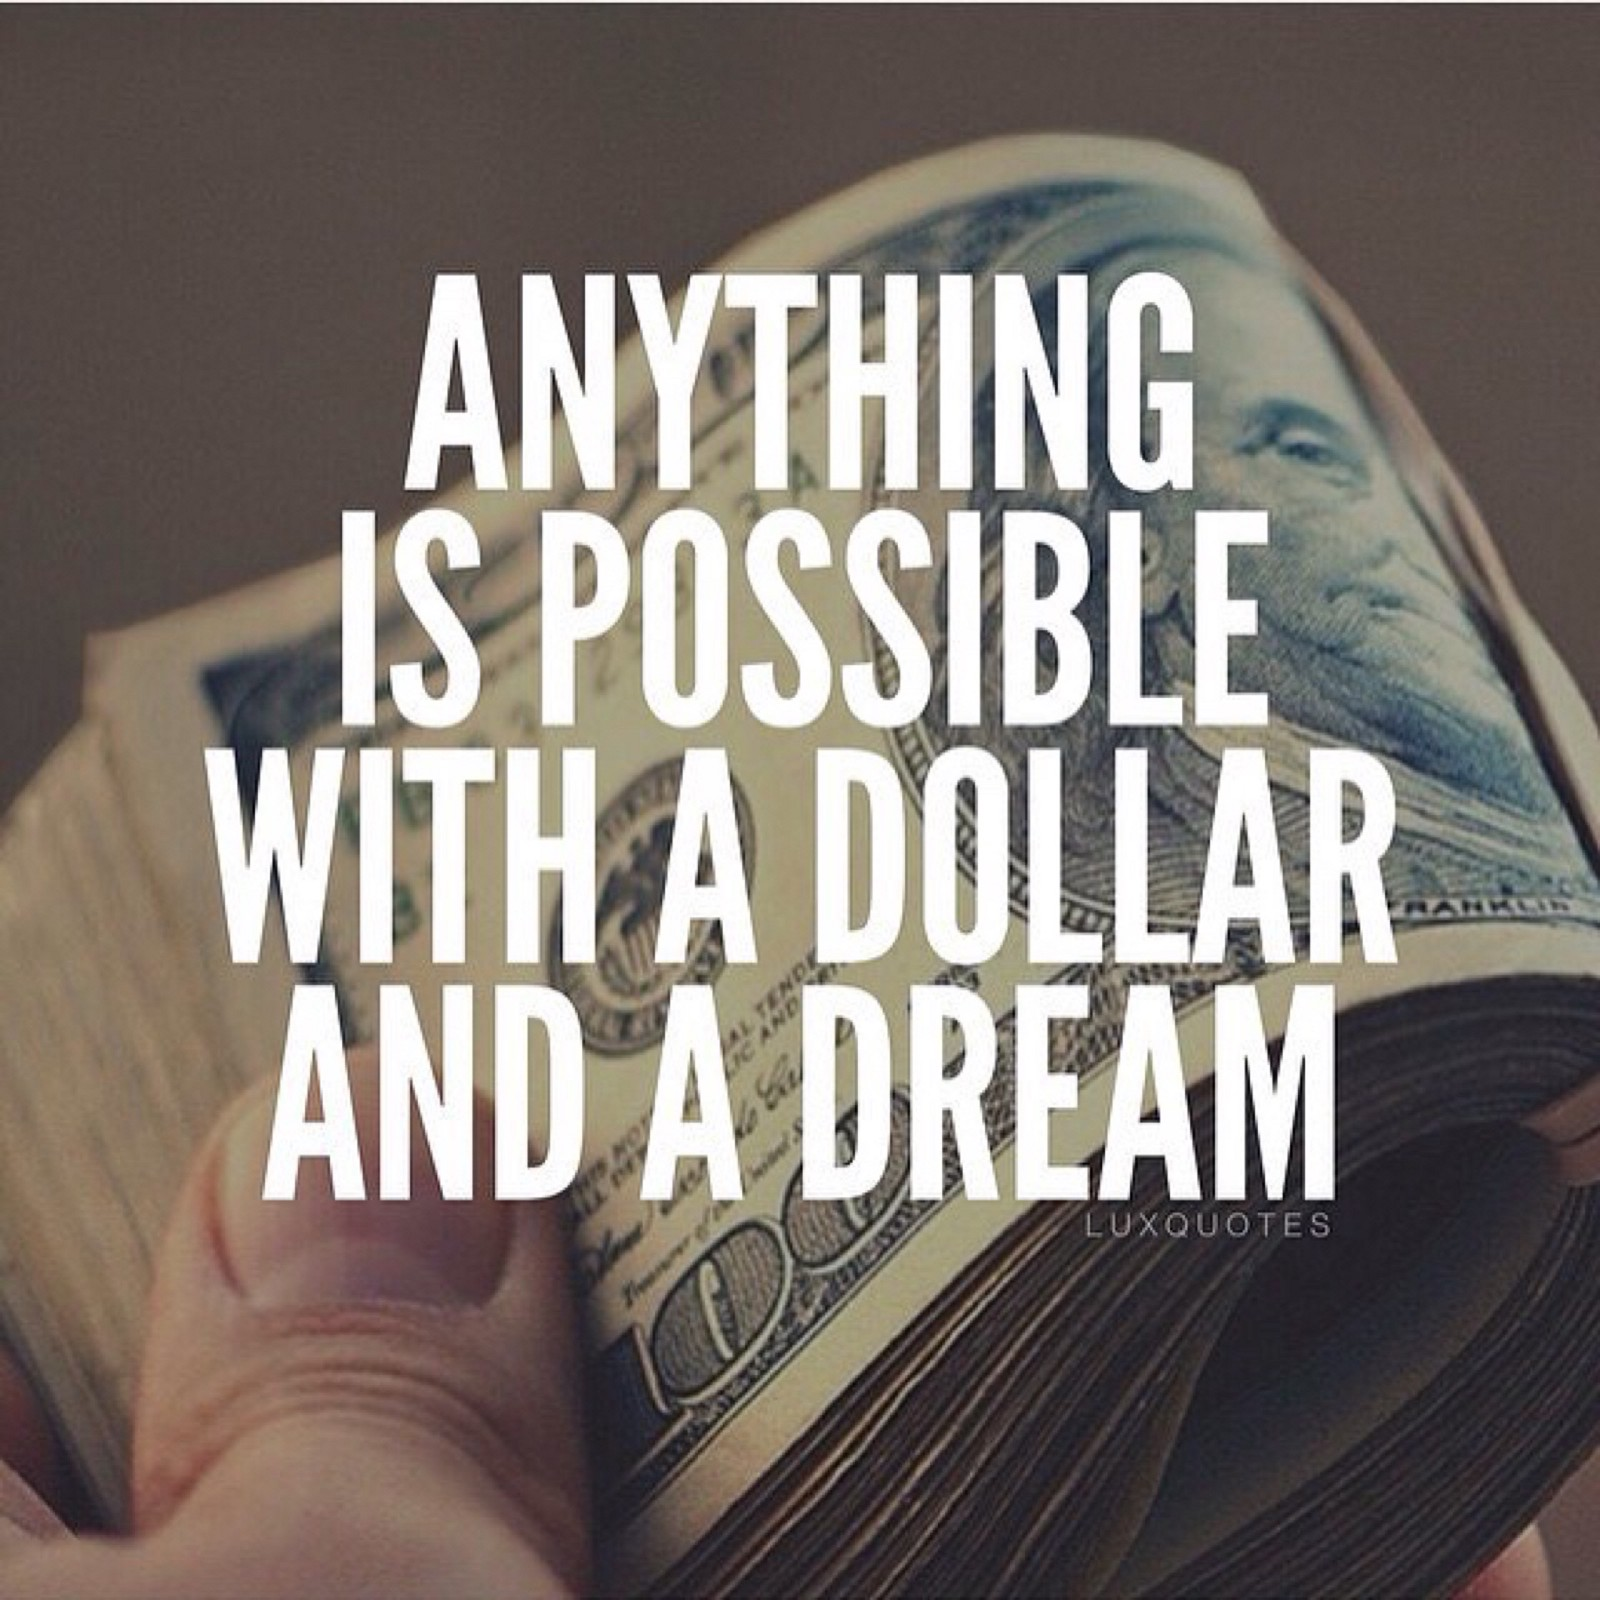 25 Quotes About Making Money And Keeping Perspective